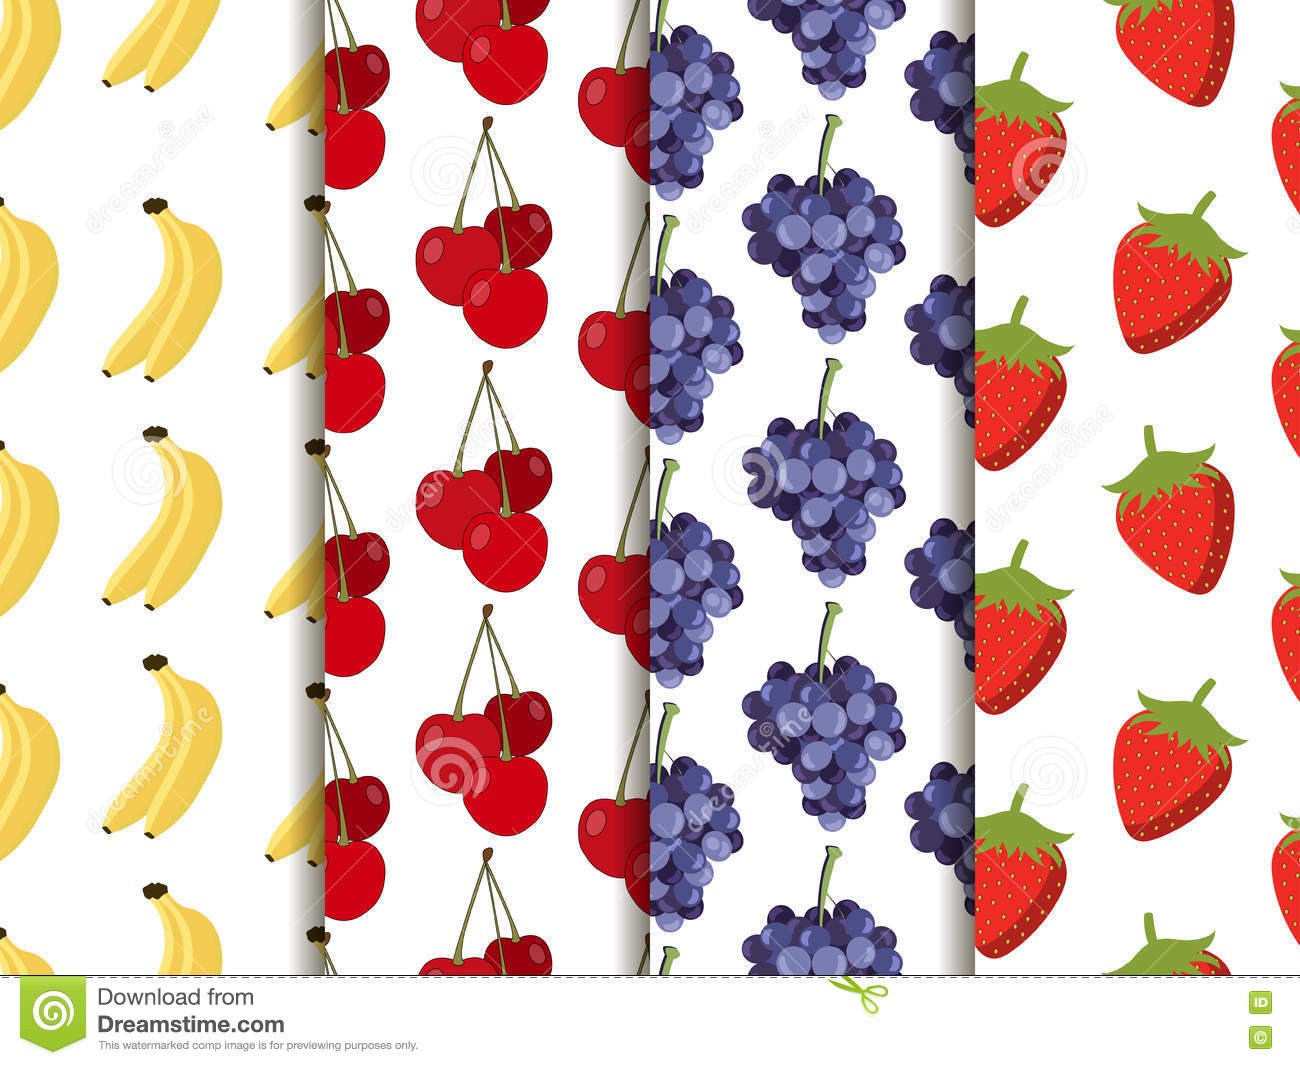 Set of seamless pattern with fruit. Pattern of bananas, cherries, strawberries and grapes.